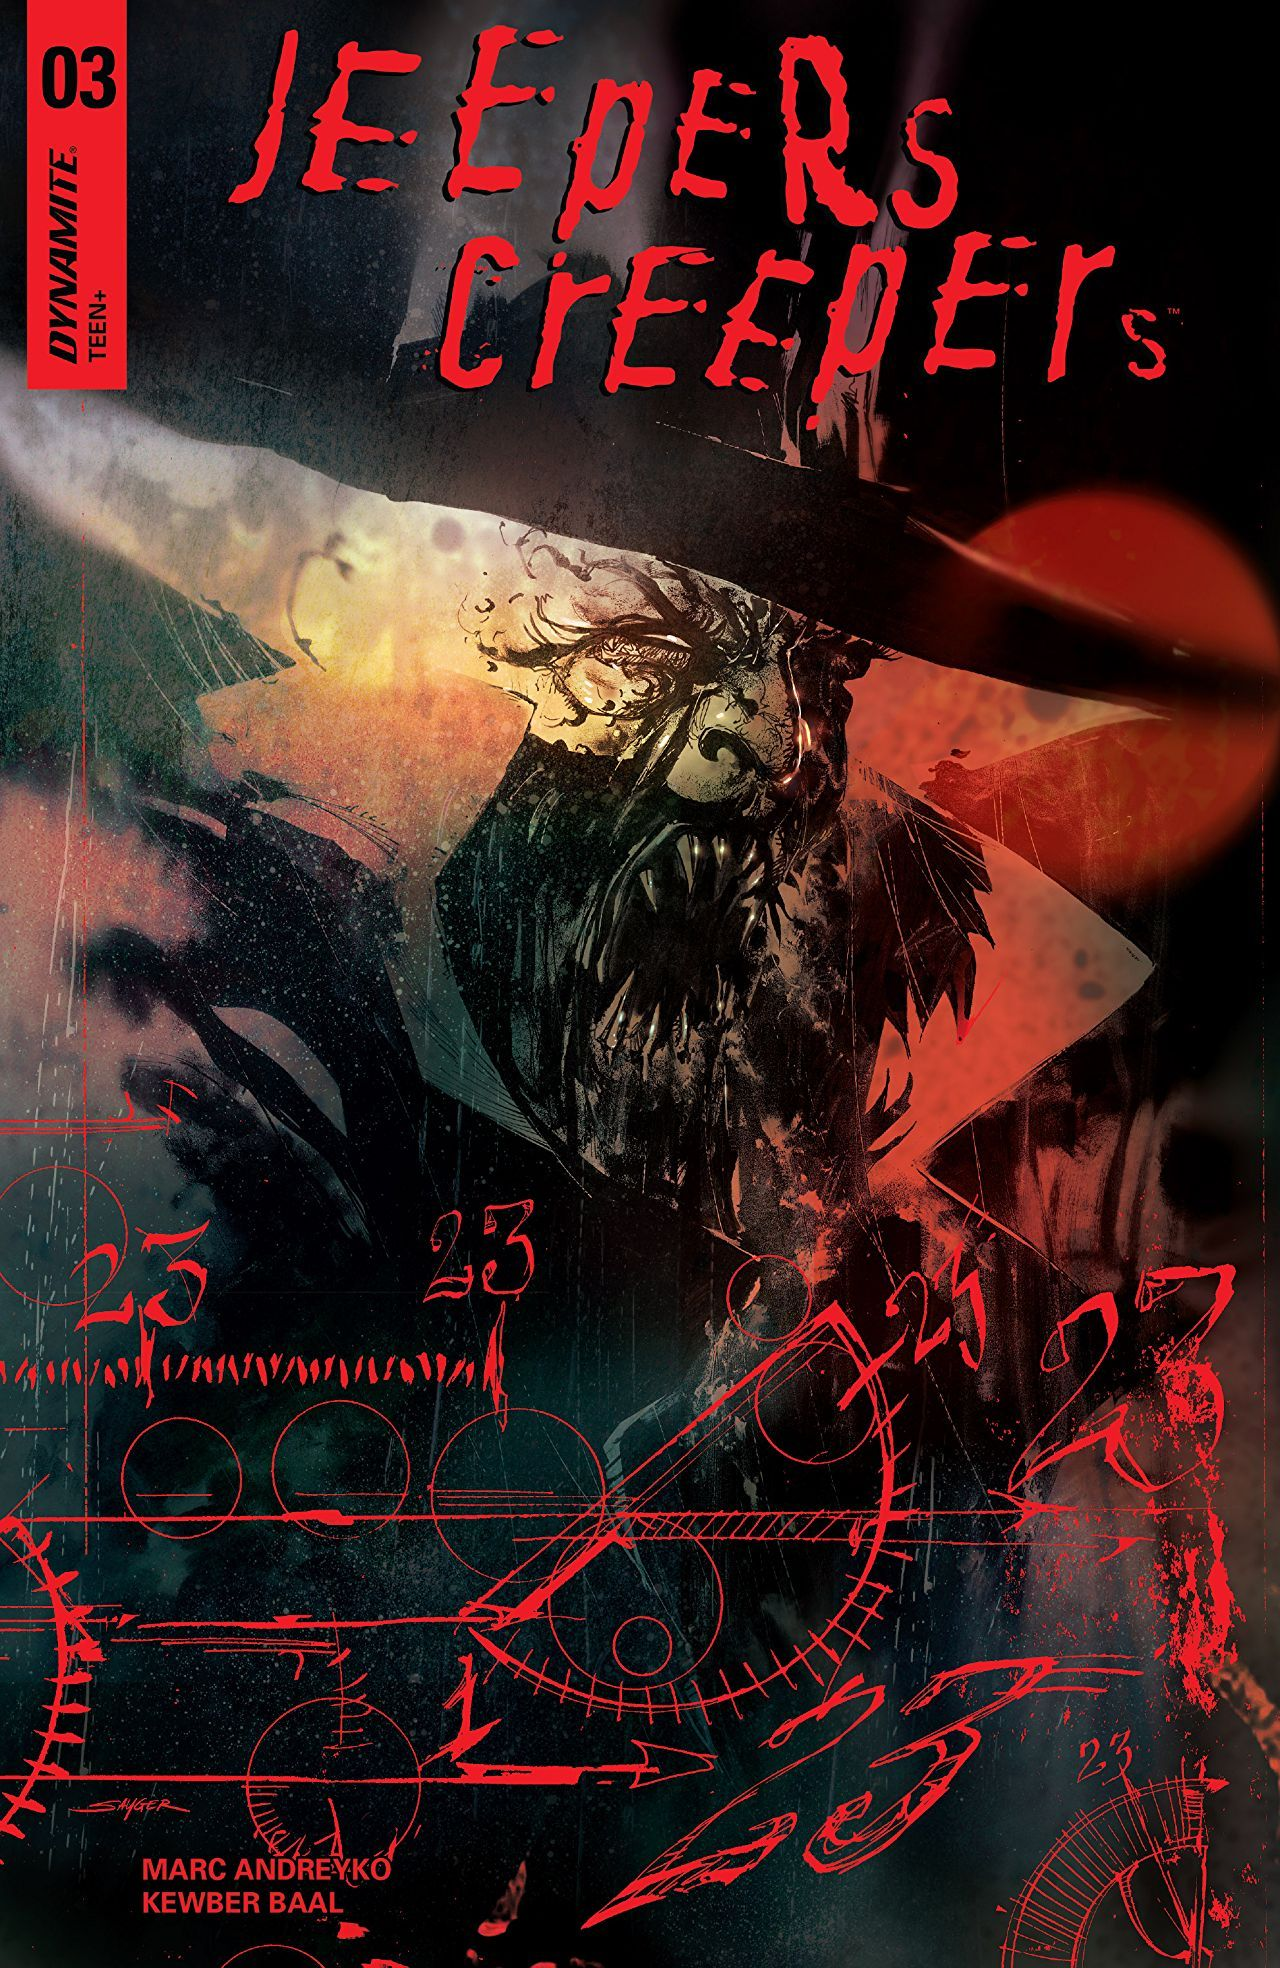 Jeepers Creepers 3 Comics By Comixology Jonah Hex Jeepers Creepers Comic Book Superheroes